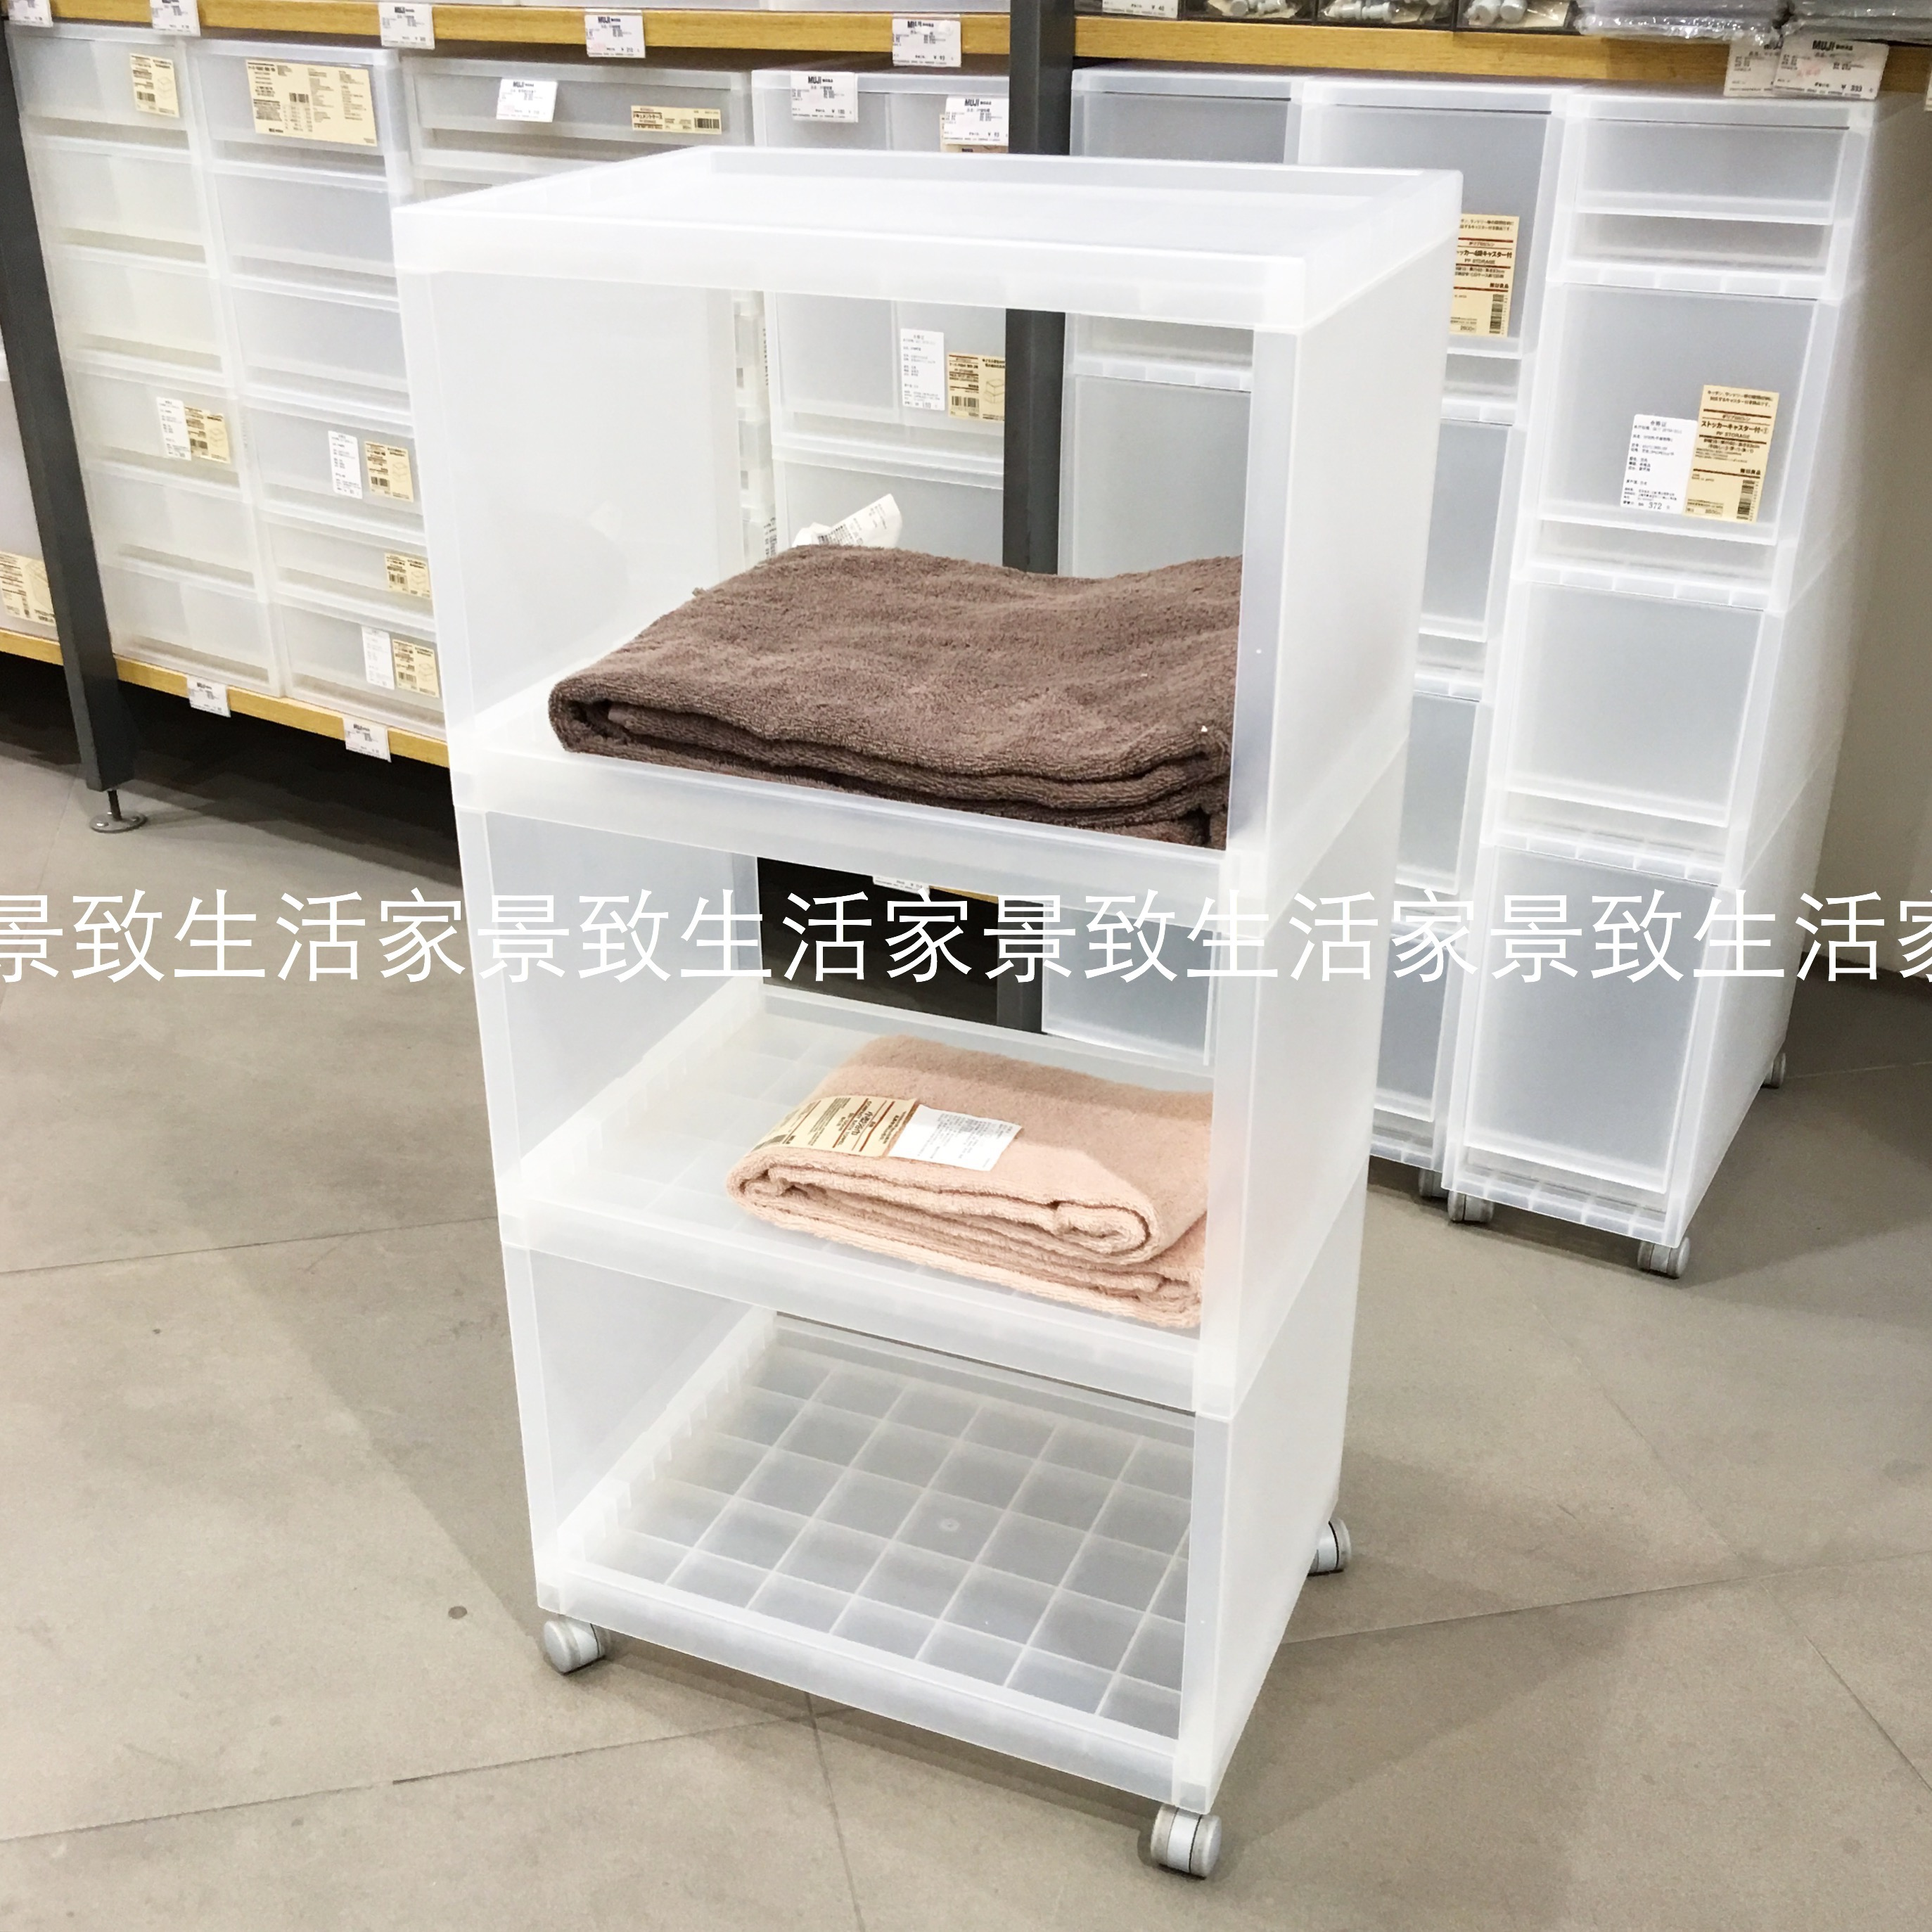 usd muji muji pp assembled carts with wheels bathroom kitchen three tier storage racks. Black Bedroom Furniture Sets. Home Design Ideas